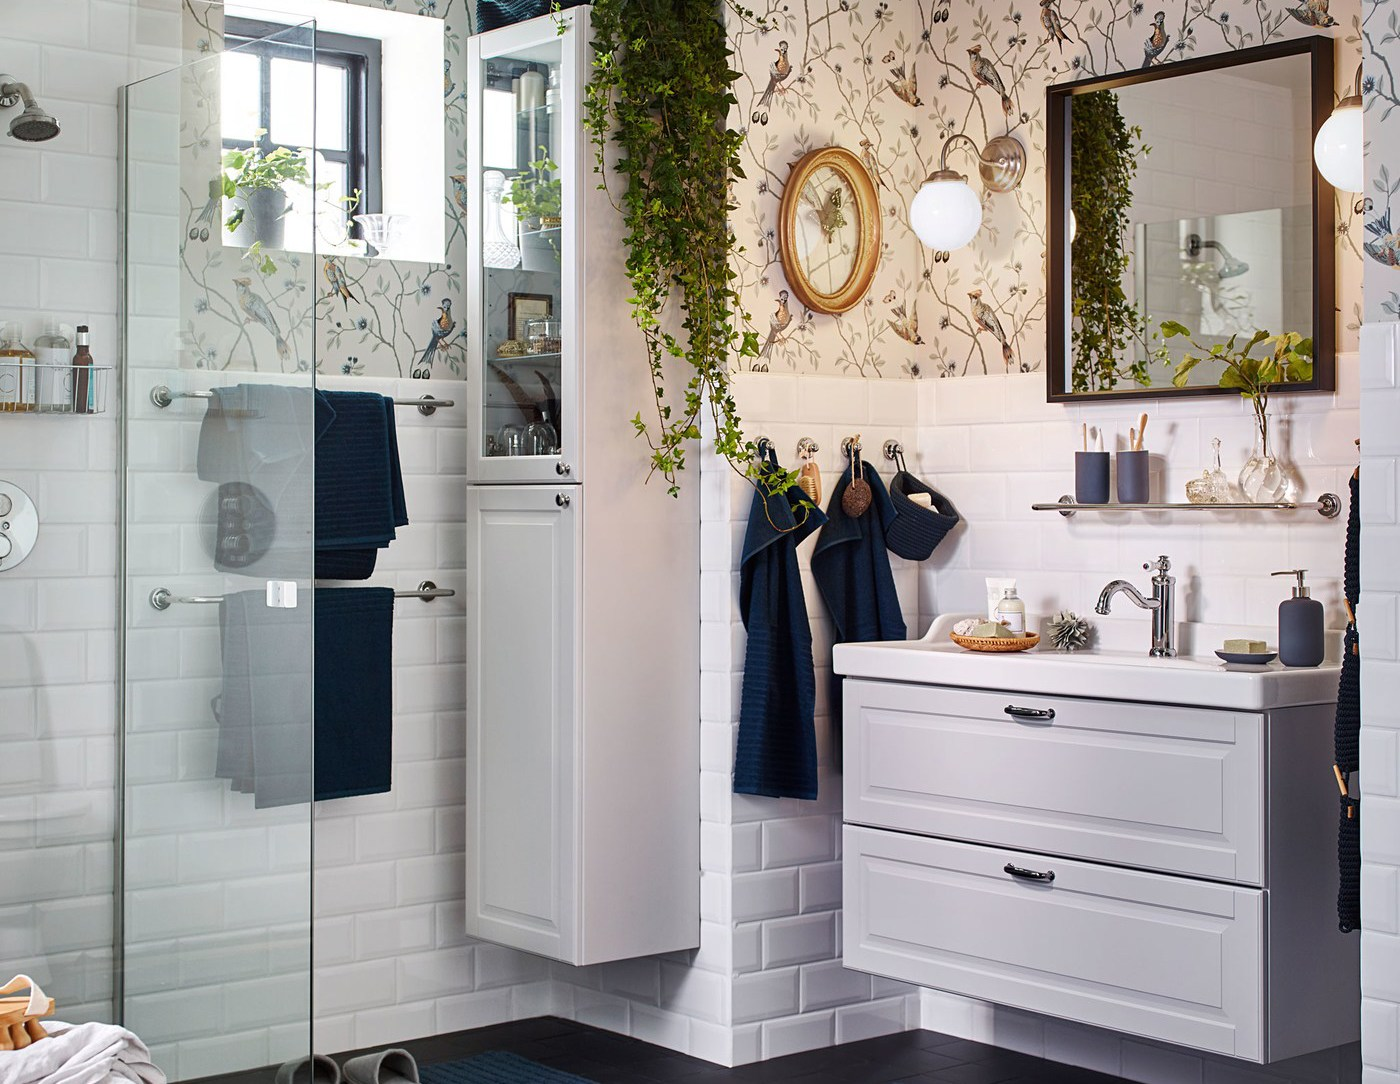 Bathroom Design Ideas Gallery   IKEA